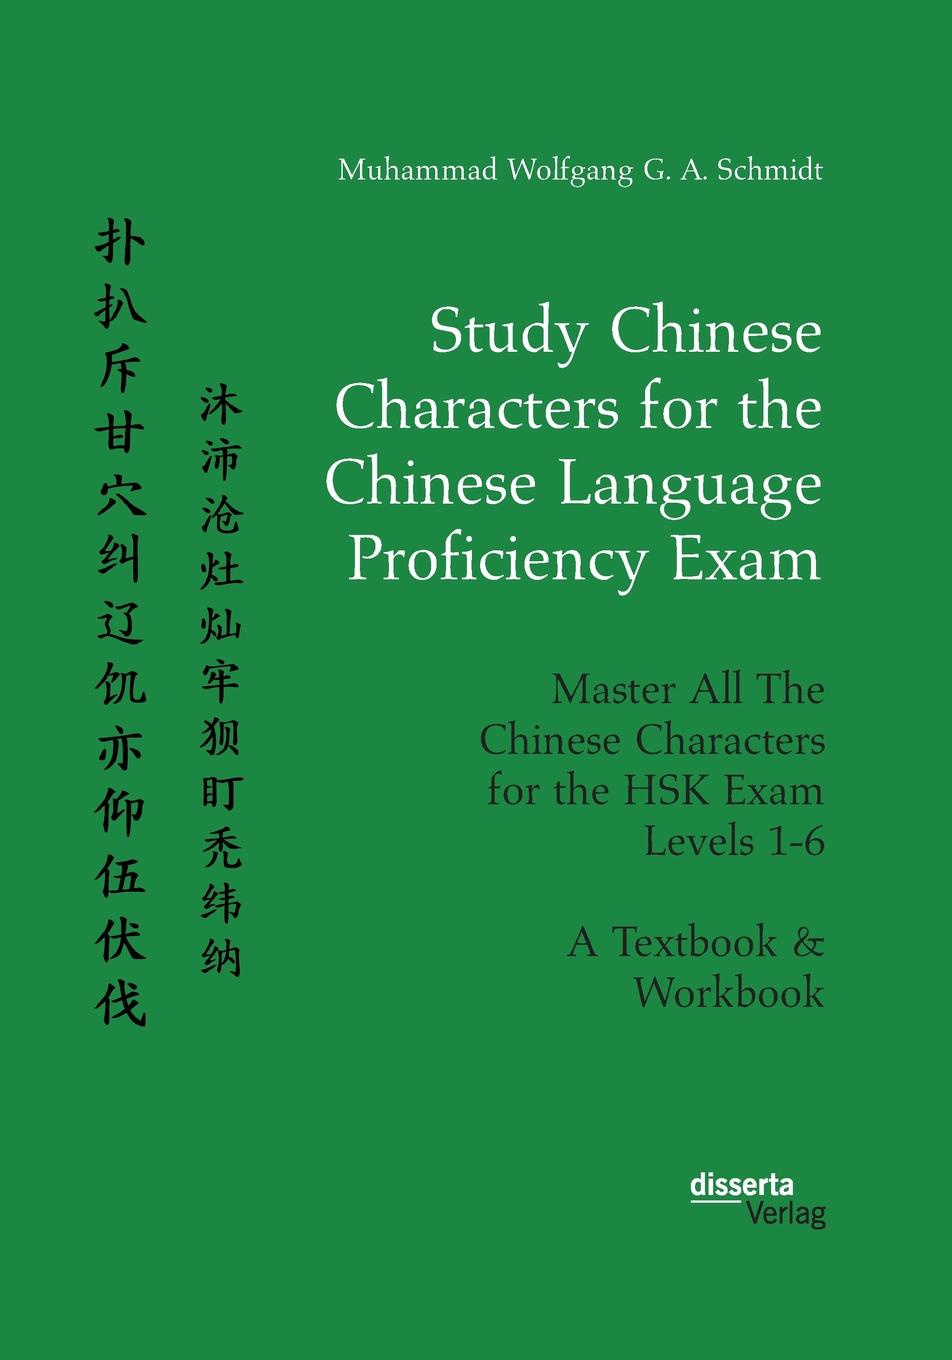 Muhammad Wolfgang G. A. Schmidt Study Chinese Characters for the Chinese Language Proficiency Exam. Master All The Chinese Characters for the HSK Exam Levels 1-6. A Textbook . Workbook недорго, оригинальная цена